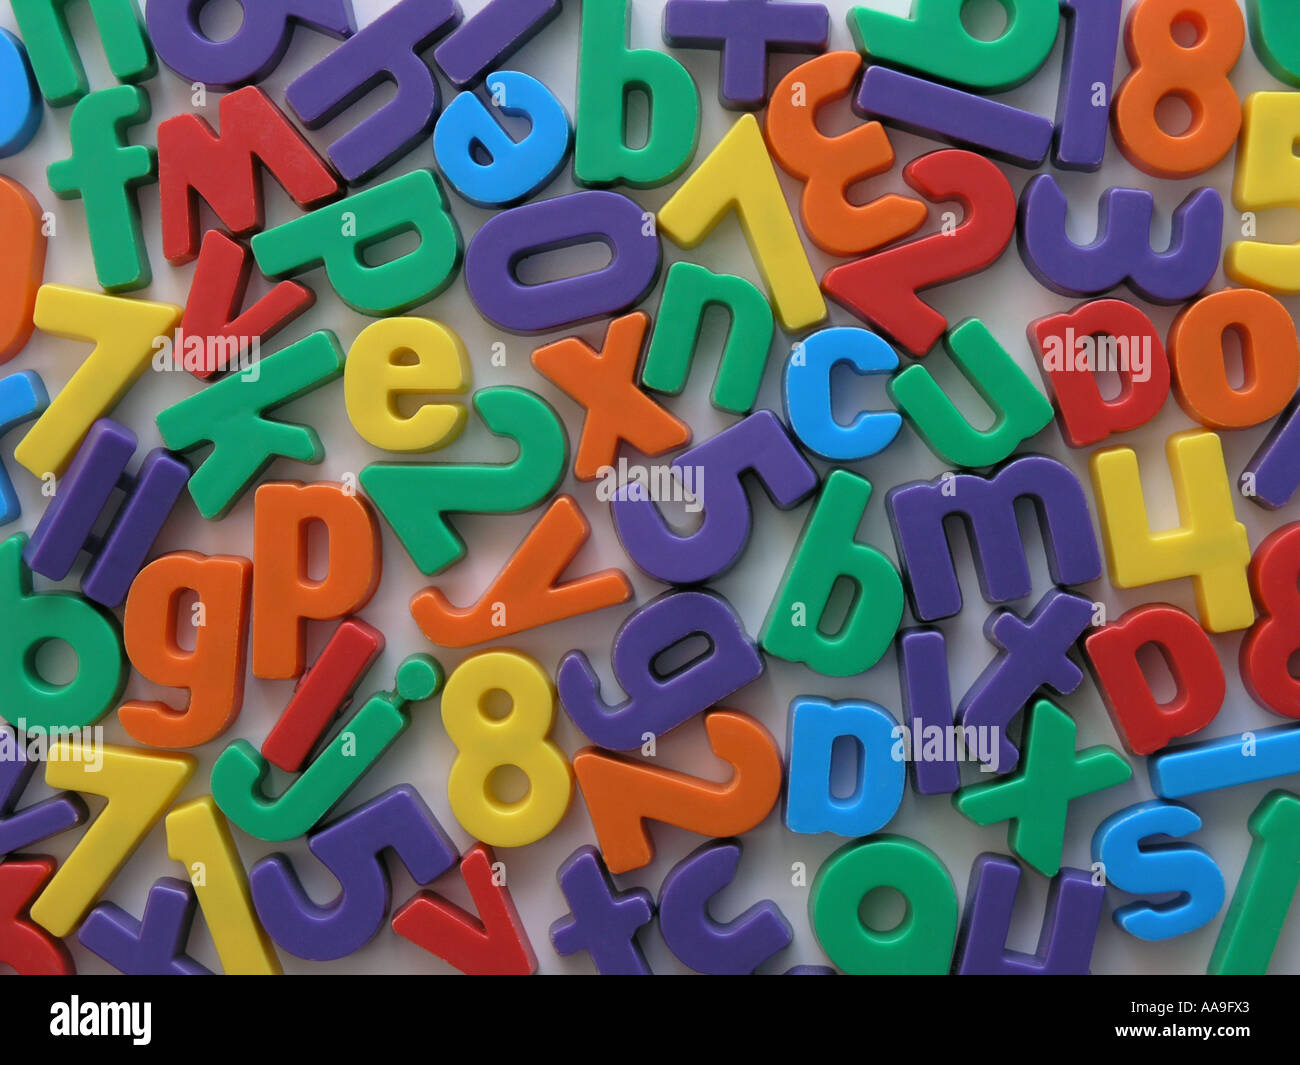 Magnetic letters and numbers on a fridge. Stock Photo